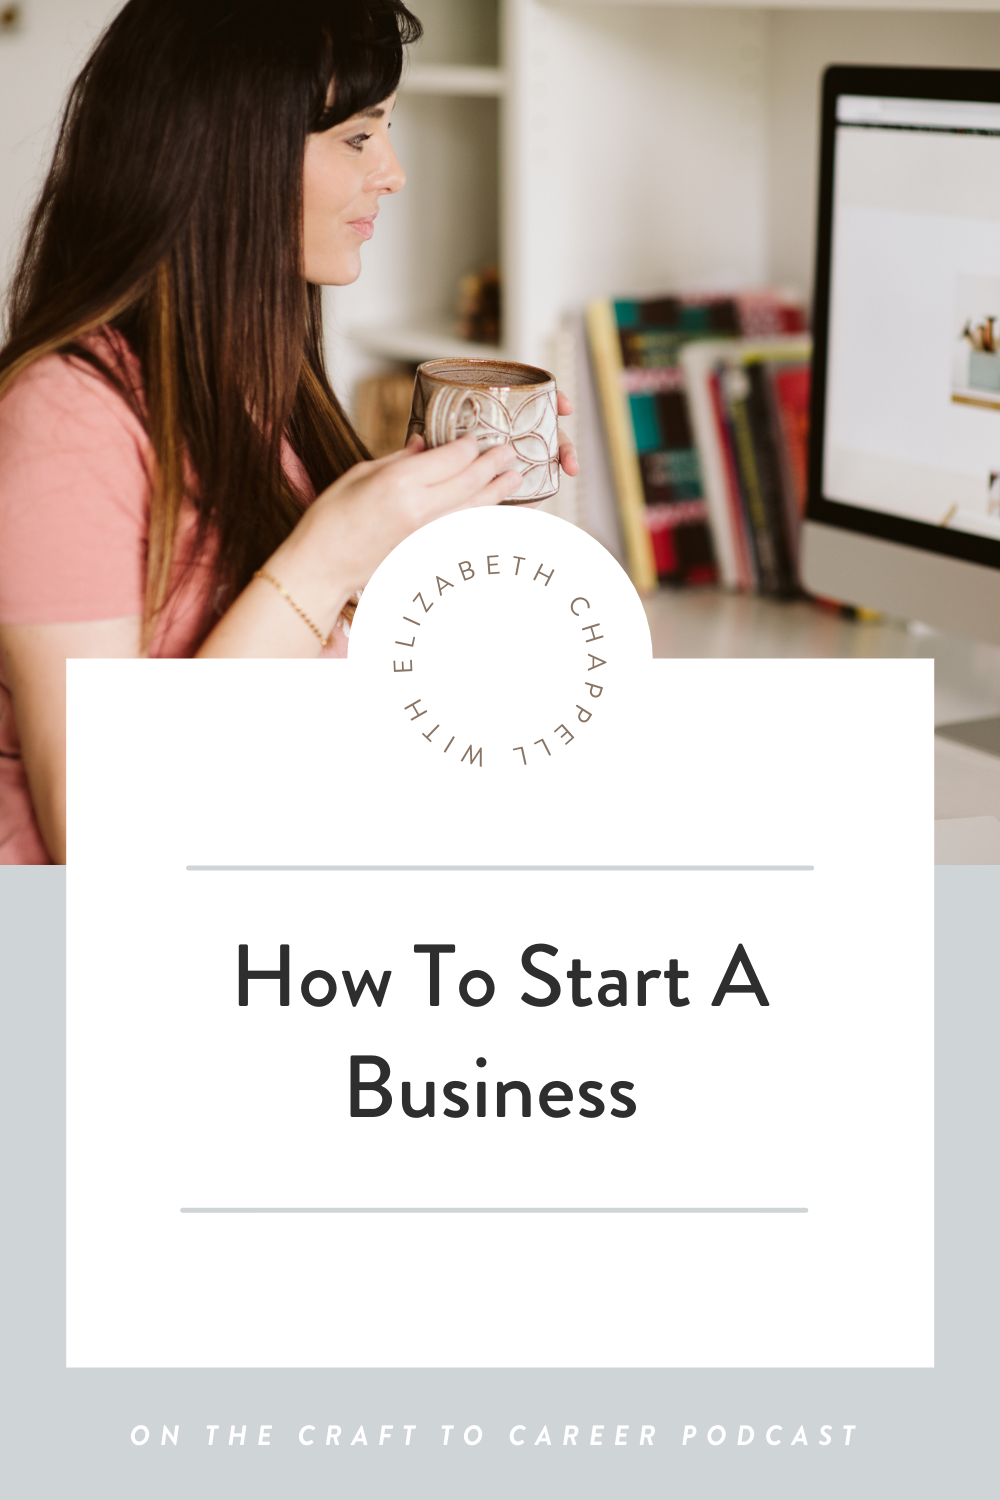 How To Start A Business Craft to Career Podcast